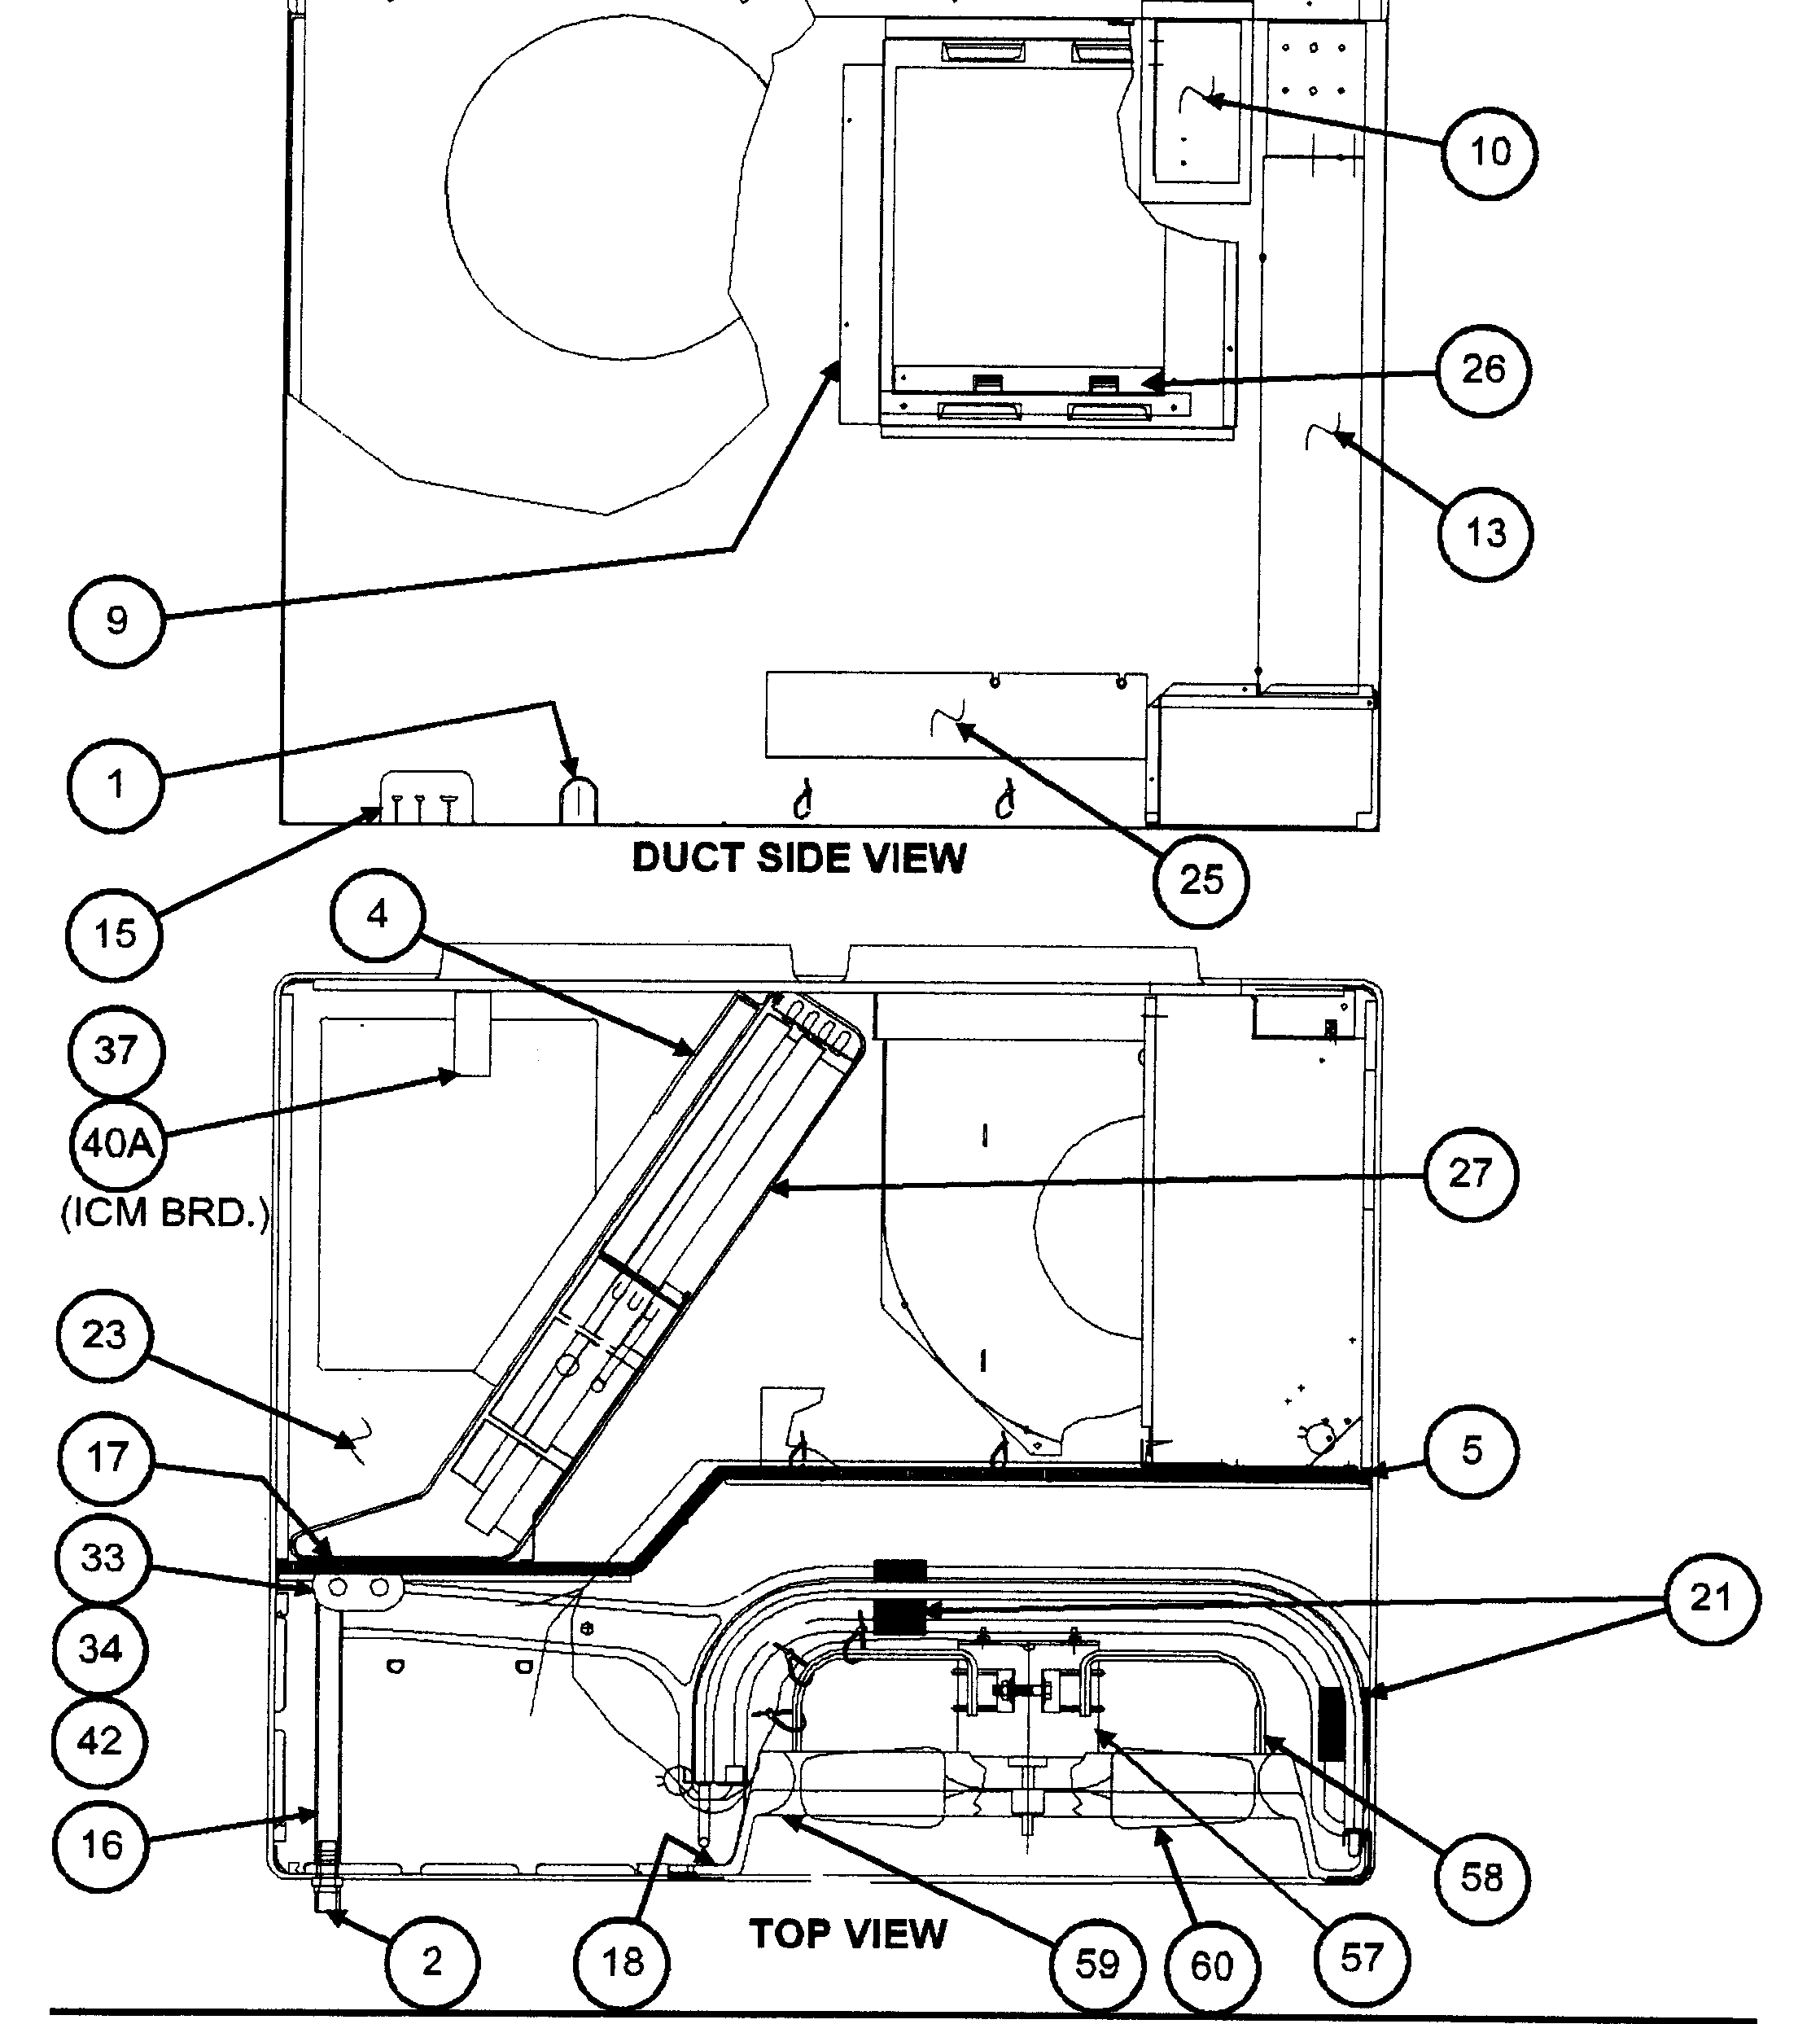 Old Payne Furnace Wiring Diagram Ruud Furnace Parts